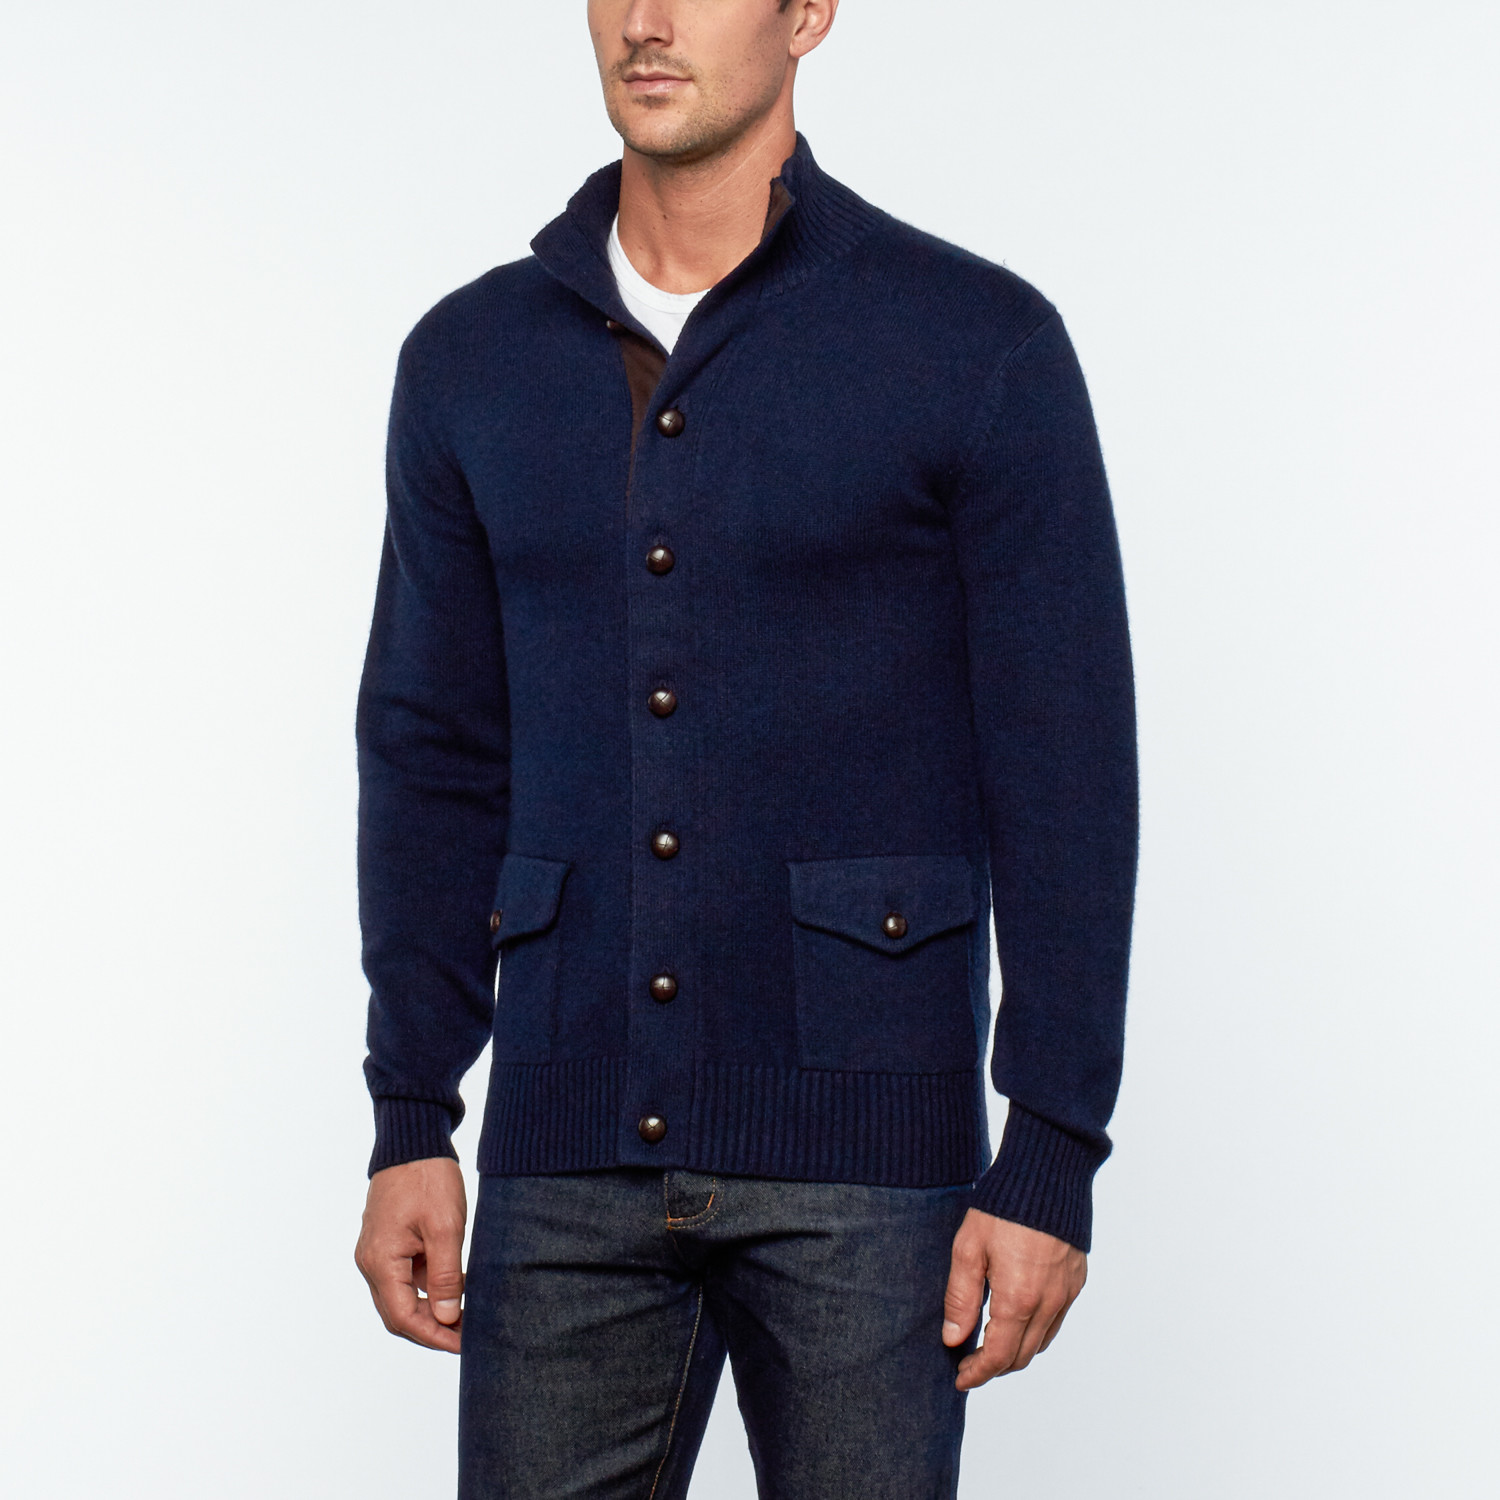 Messi Cashmere   Leather Button-Up Cardigan // Navy Blue (S ...